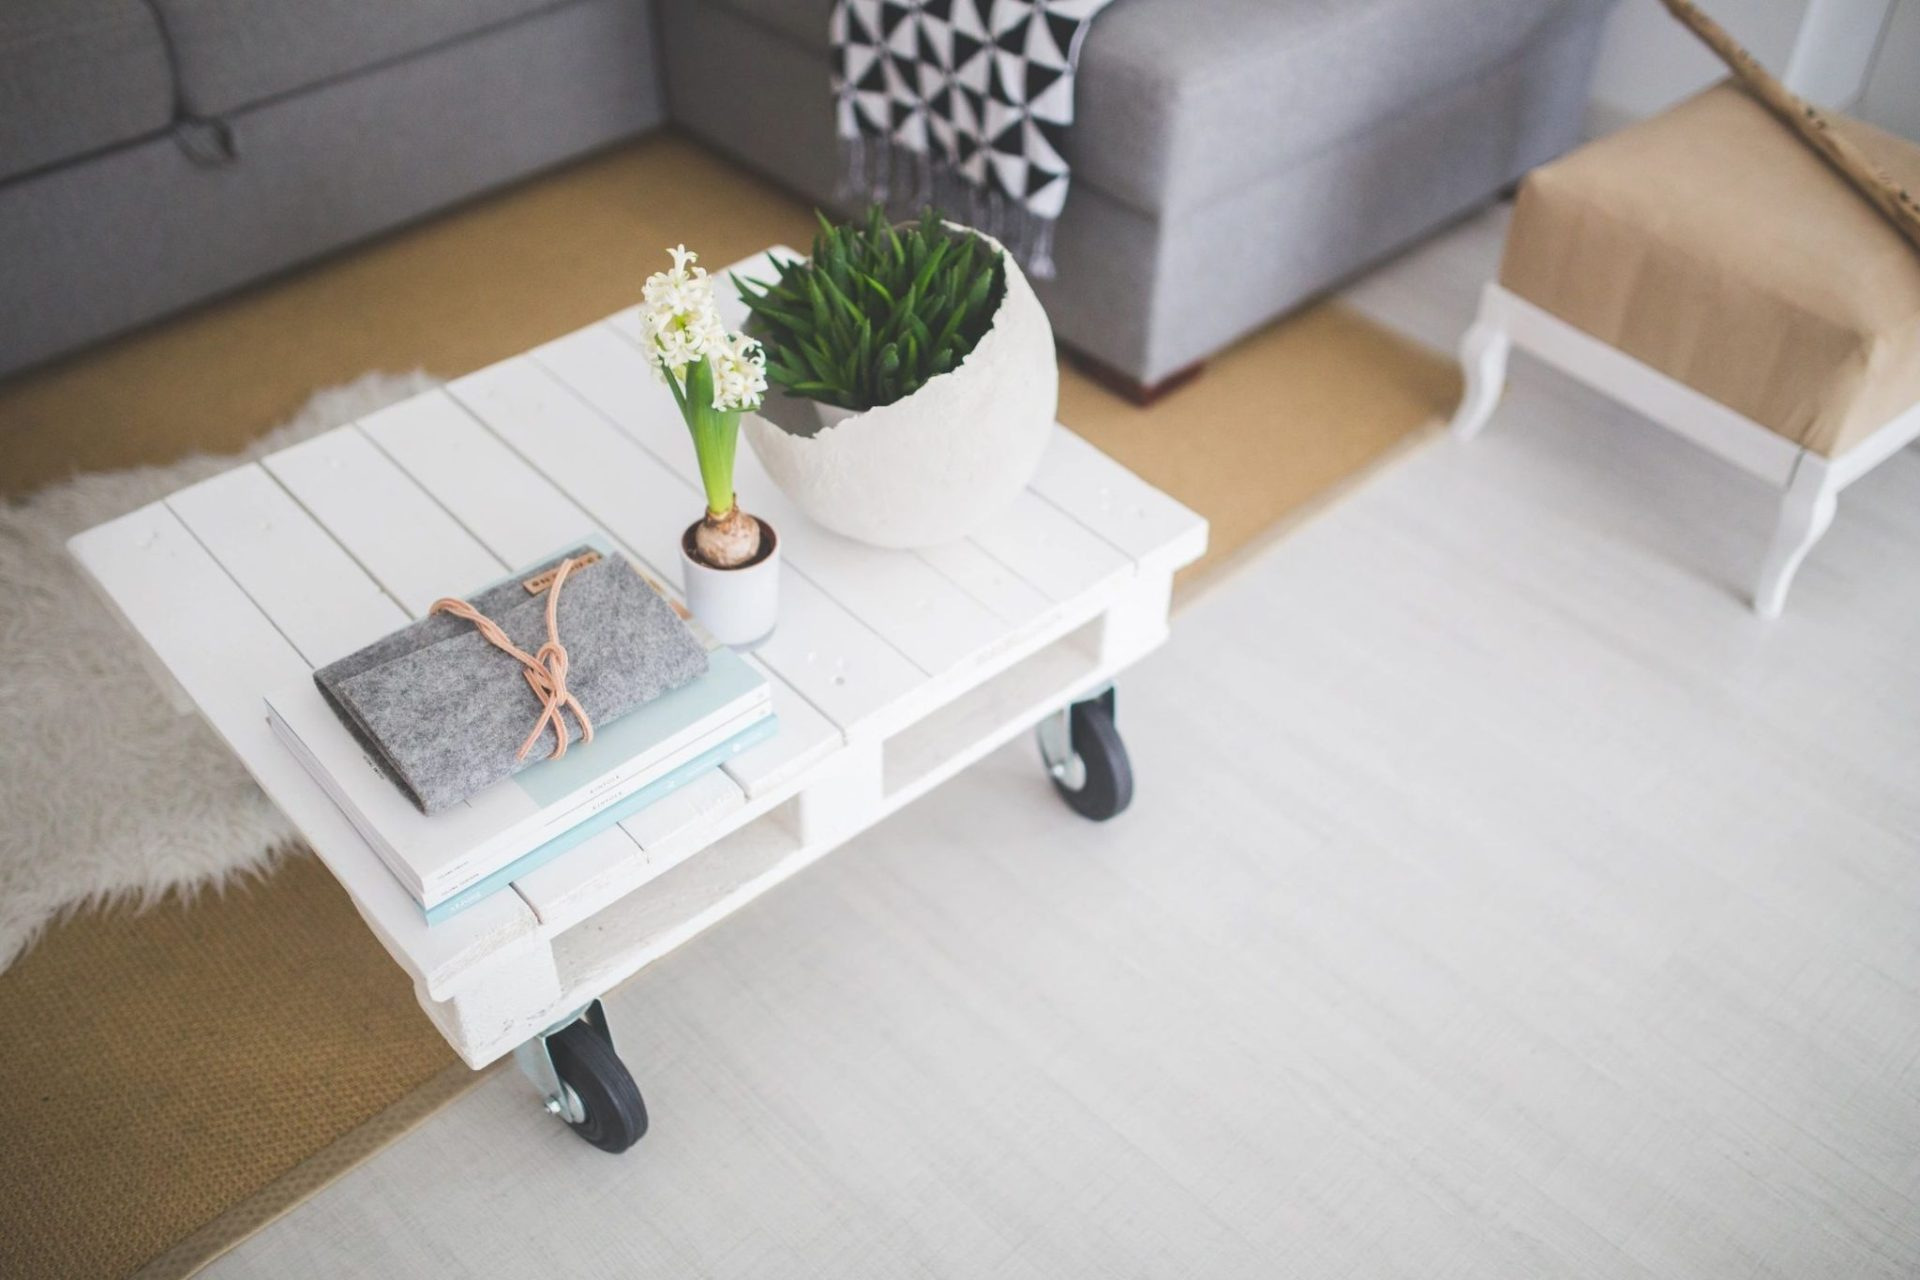 minimalism , decluttering, living with less, how to simplify and declutter your home.